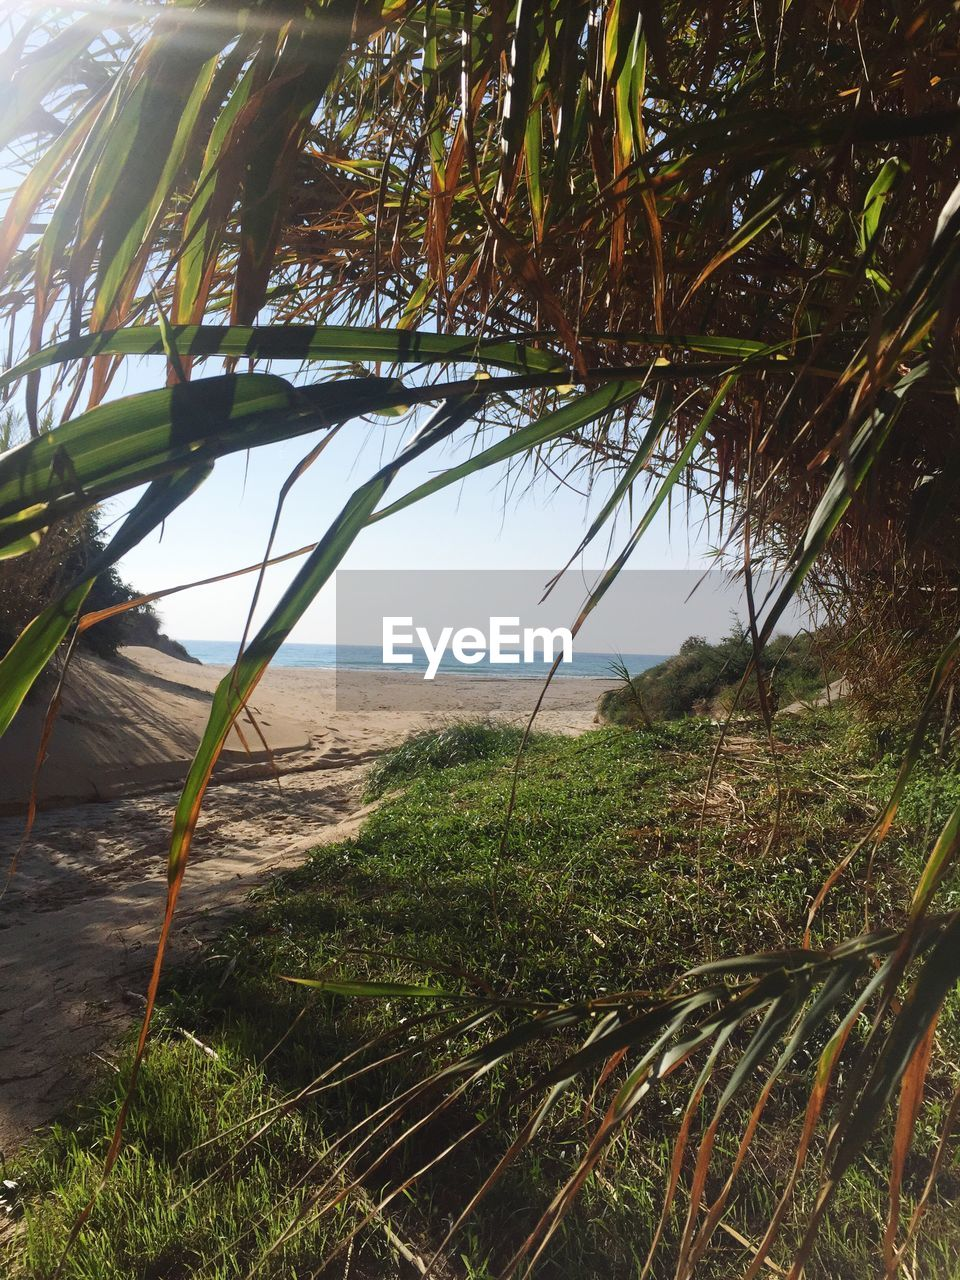 sea, tranquil scene, nature, water, grass, tranquility, growth, horizon over water, beauty in nature, scenics, day, outdoors, no people, beach, green color, plant, marram grass, tree, sky